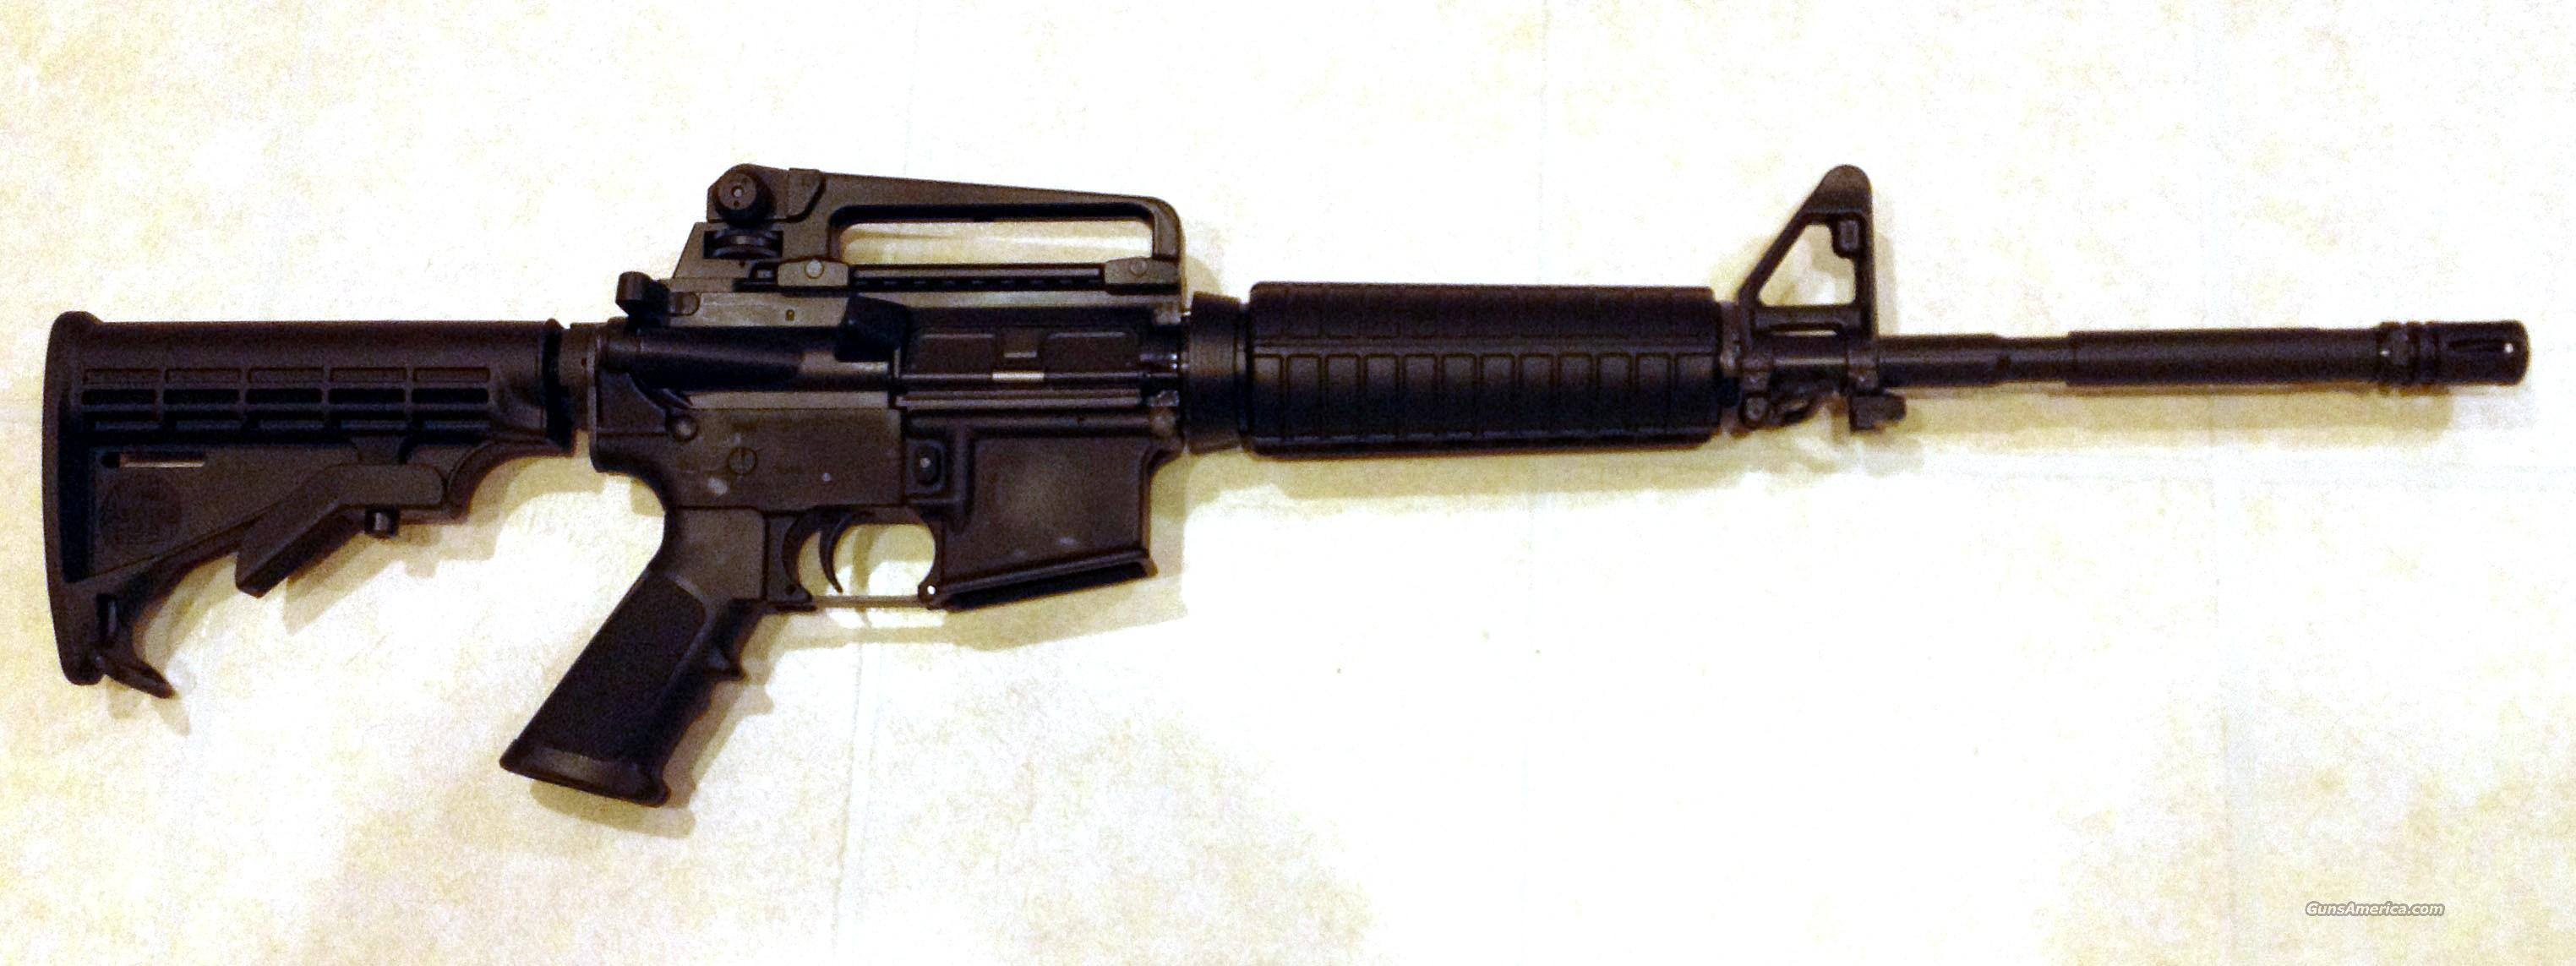 Del-Ton M4 Carbine  Guns > Rifles > AR-15 Rifles - Small Manufacturers > Complete Rifle